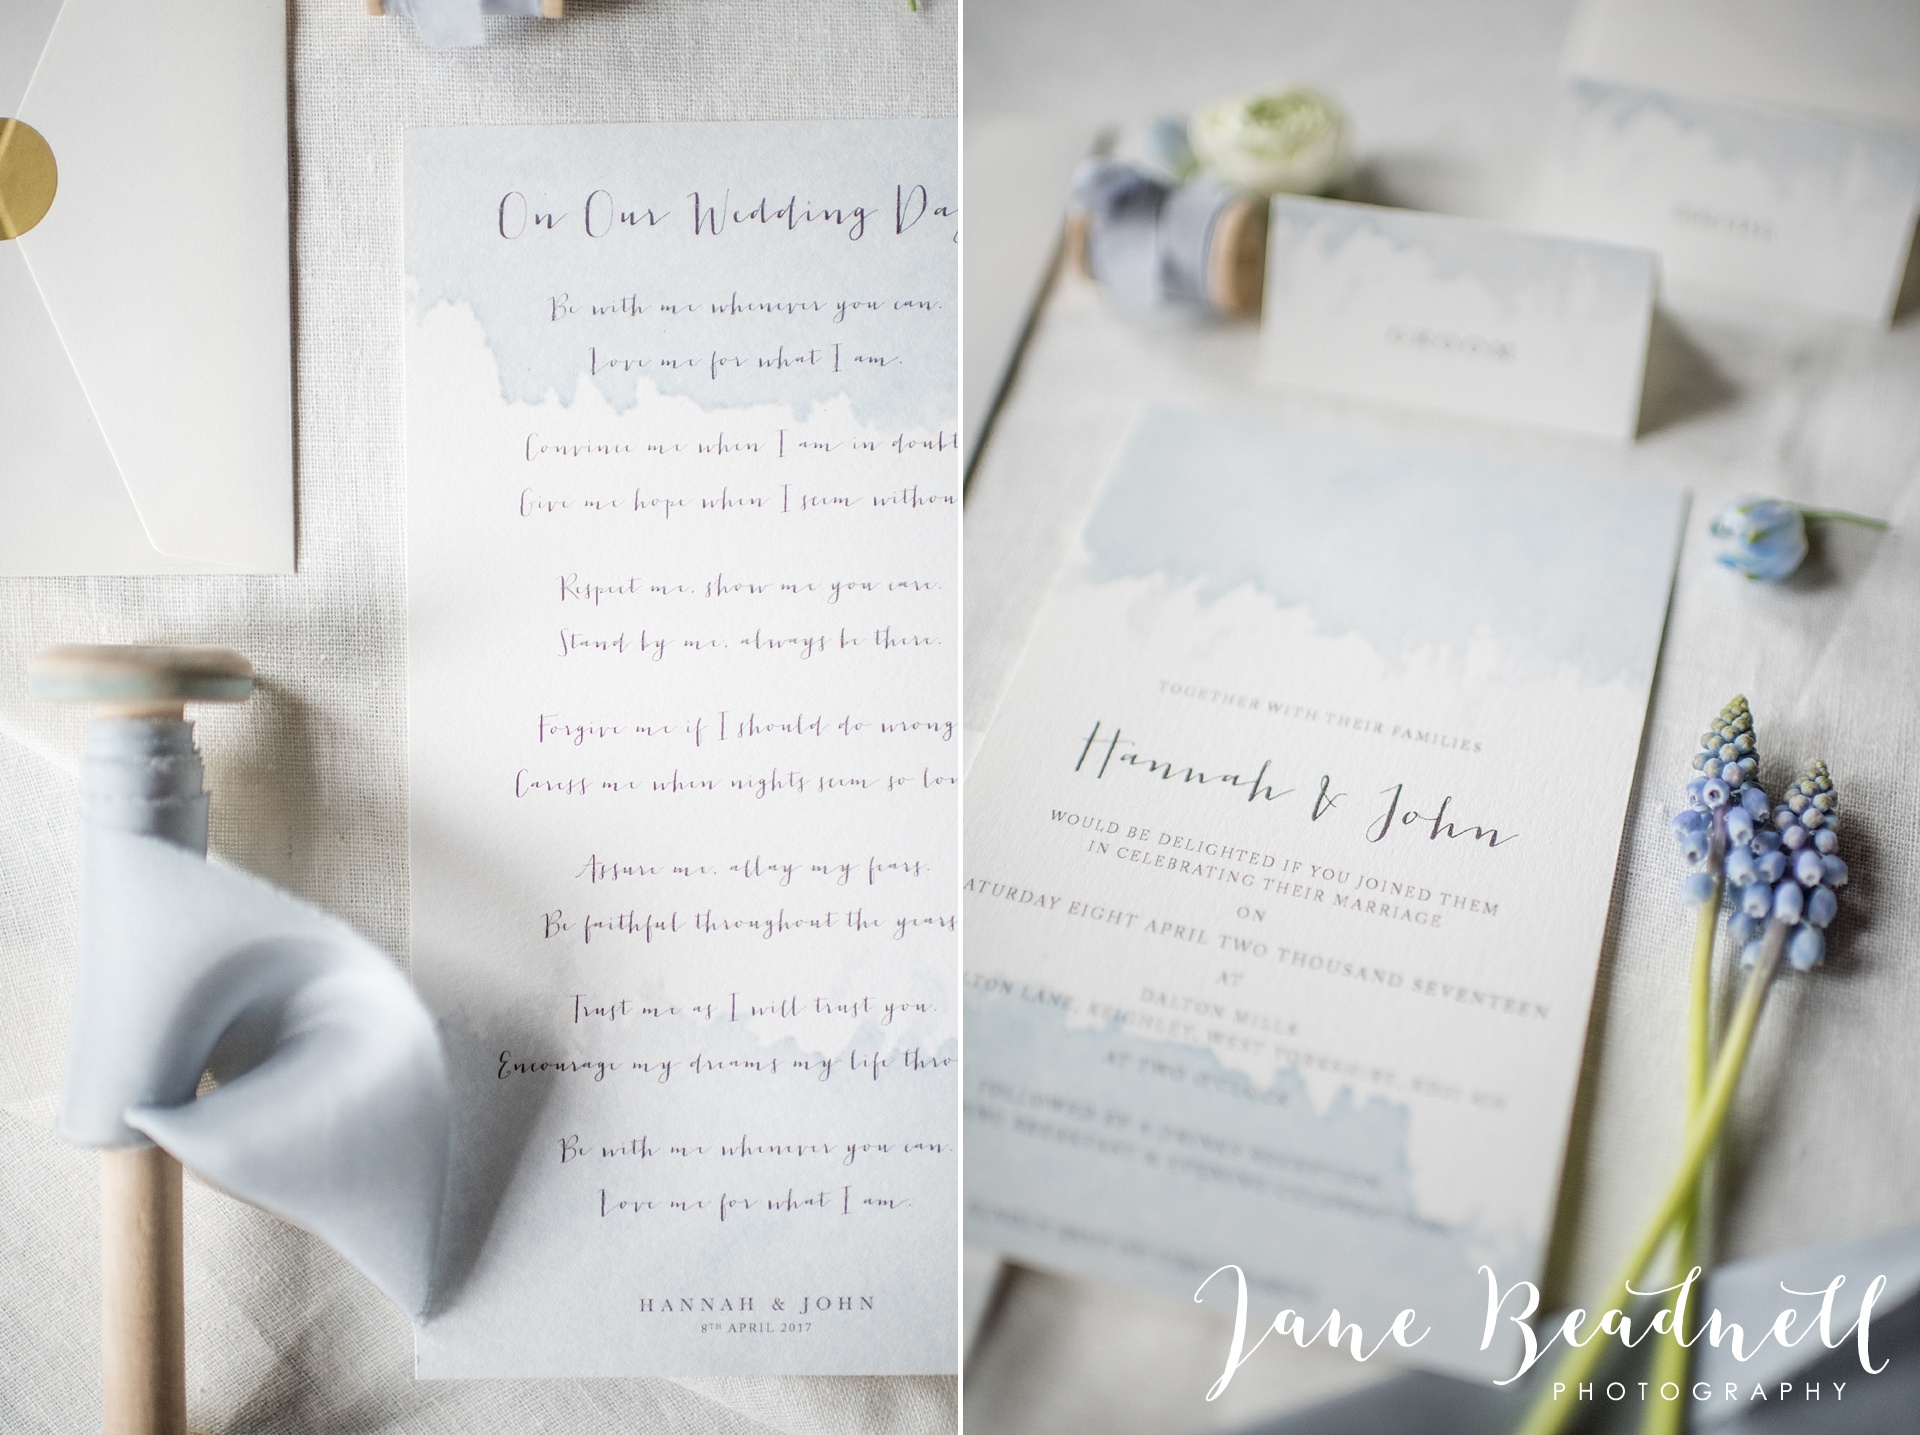 Ballet themed styled wedding shoot at Dalton Mills by Jane Beadnell Photography-0_0007